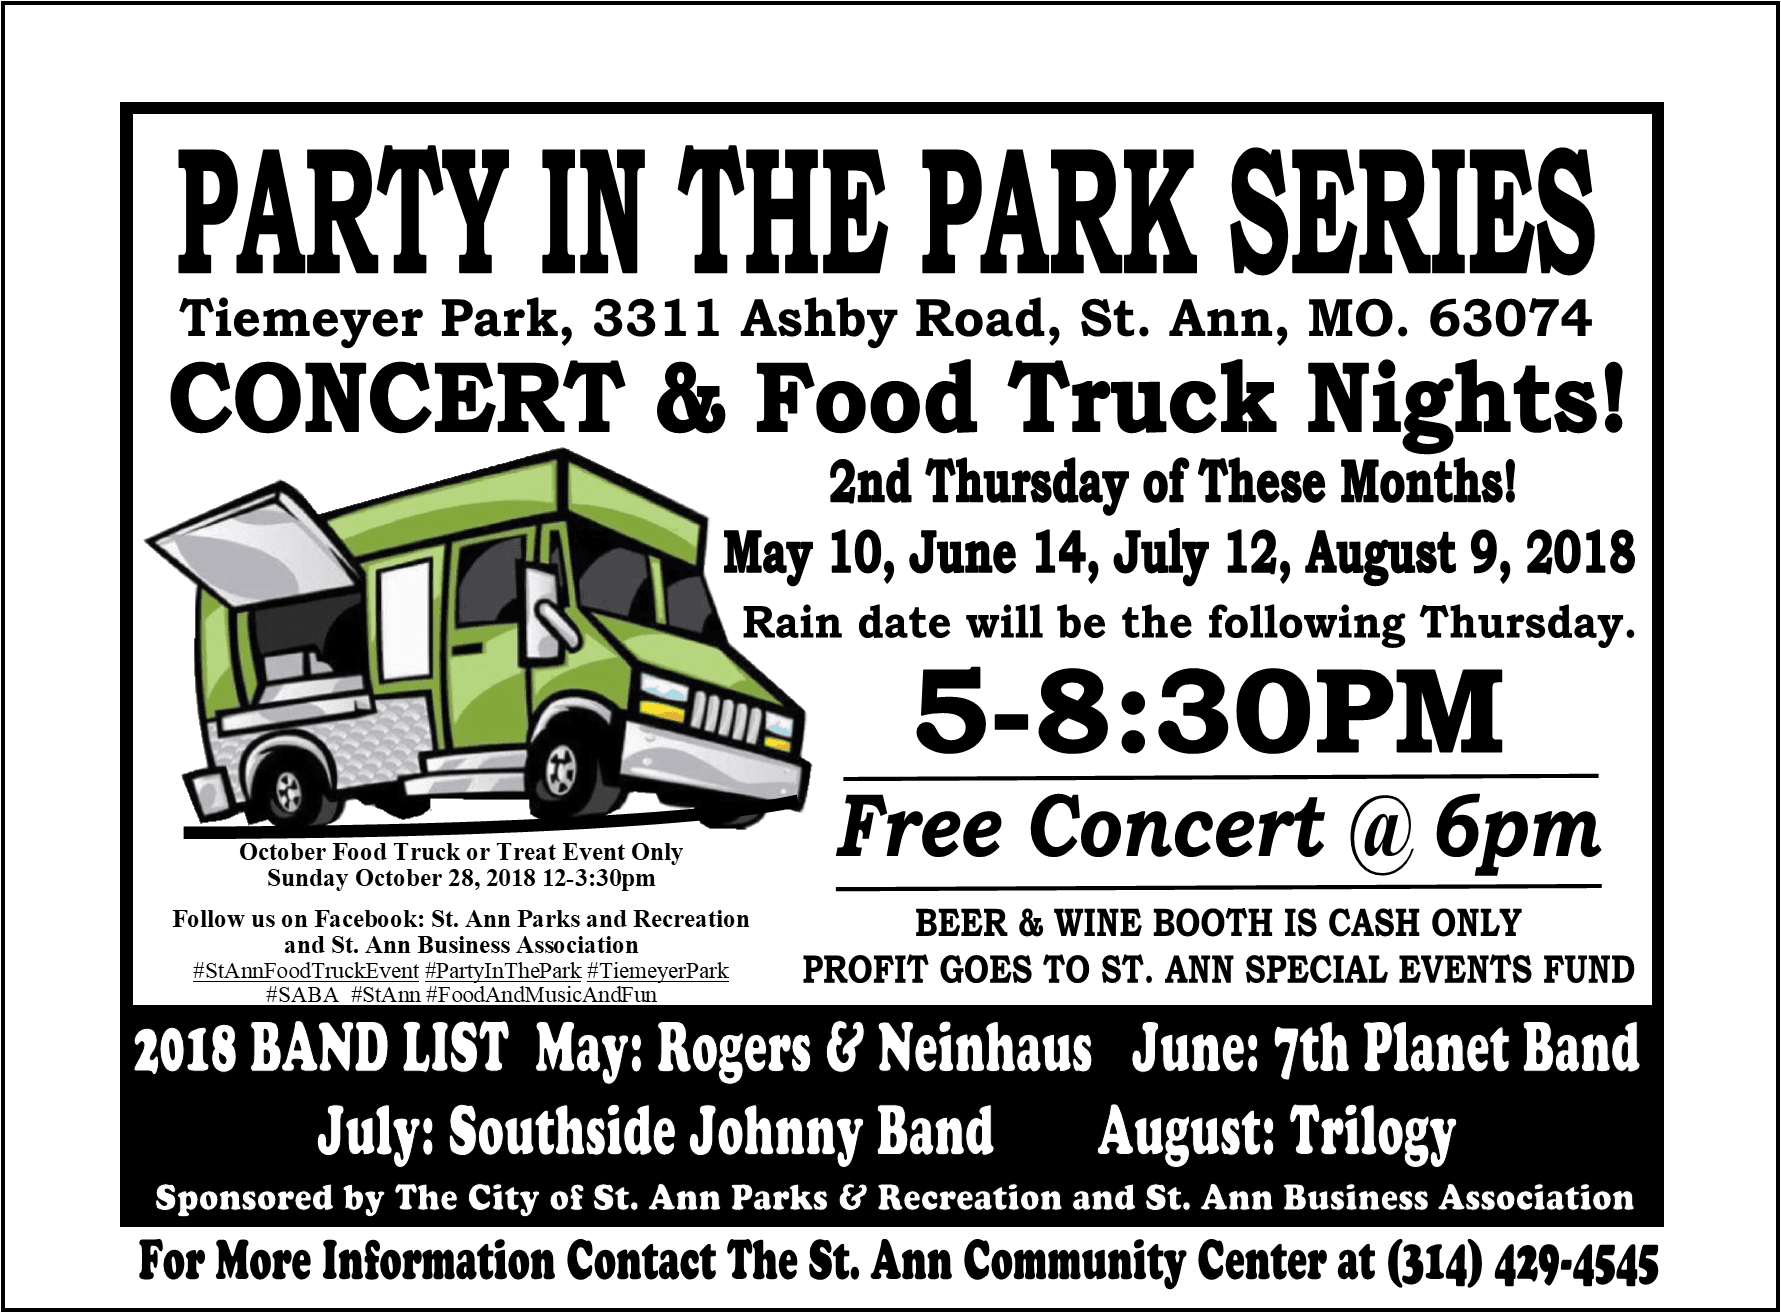 2018 Party in the Park Series Flyer